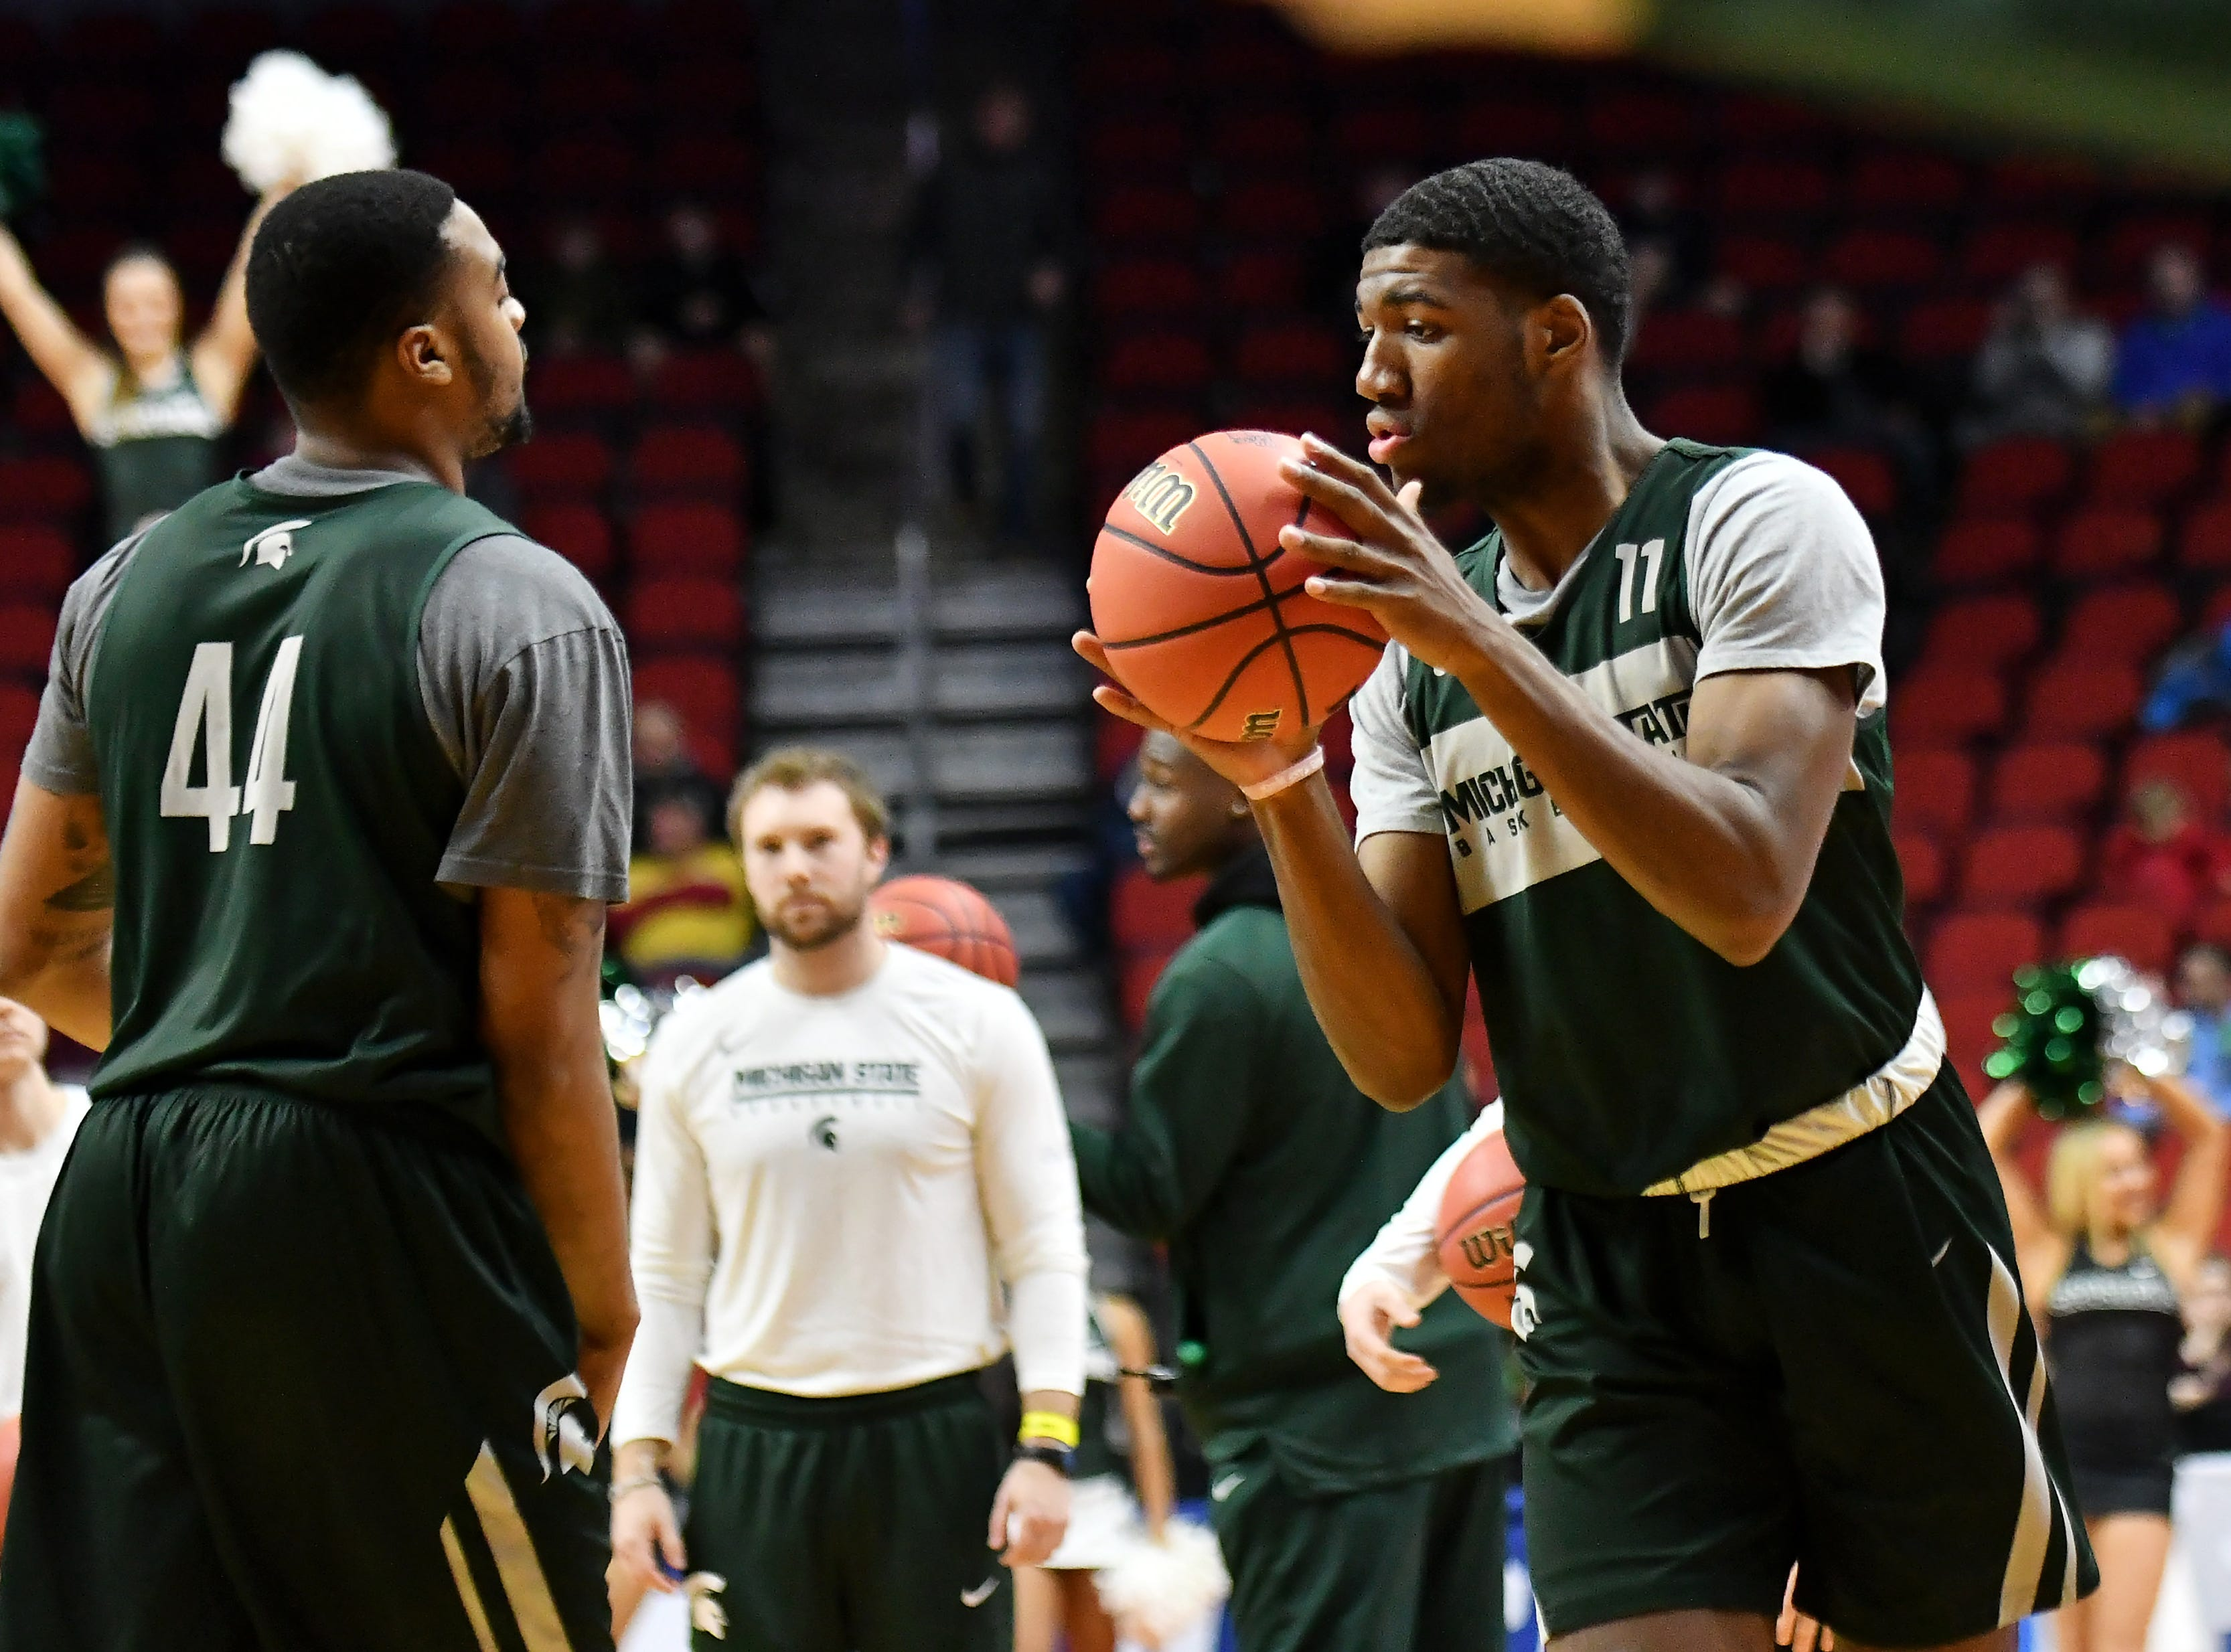 Michigan State forward Aaron Henry (11) participates in a passing drill during practice.